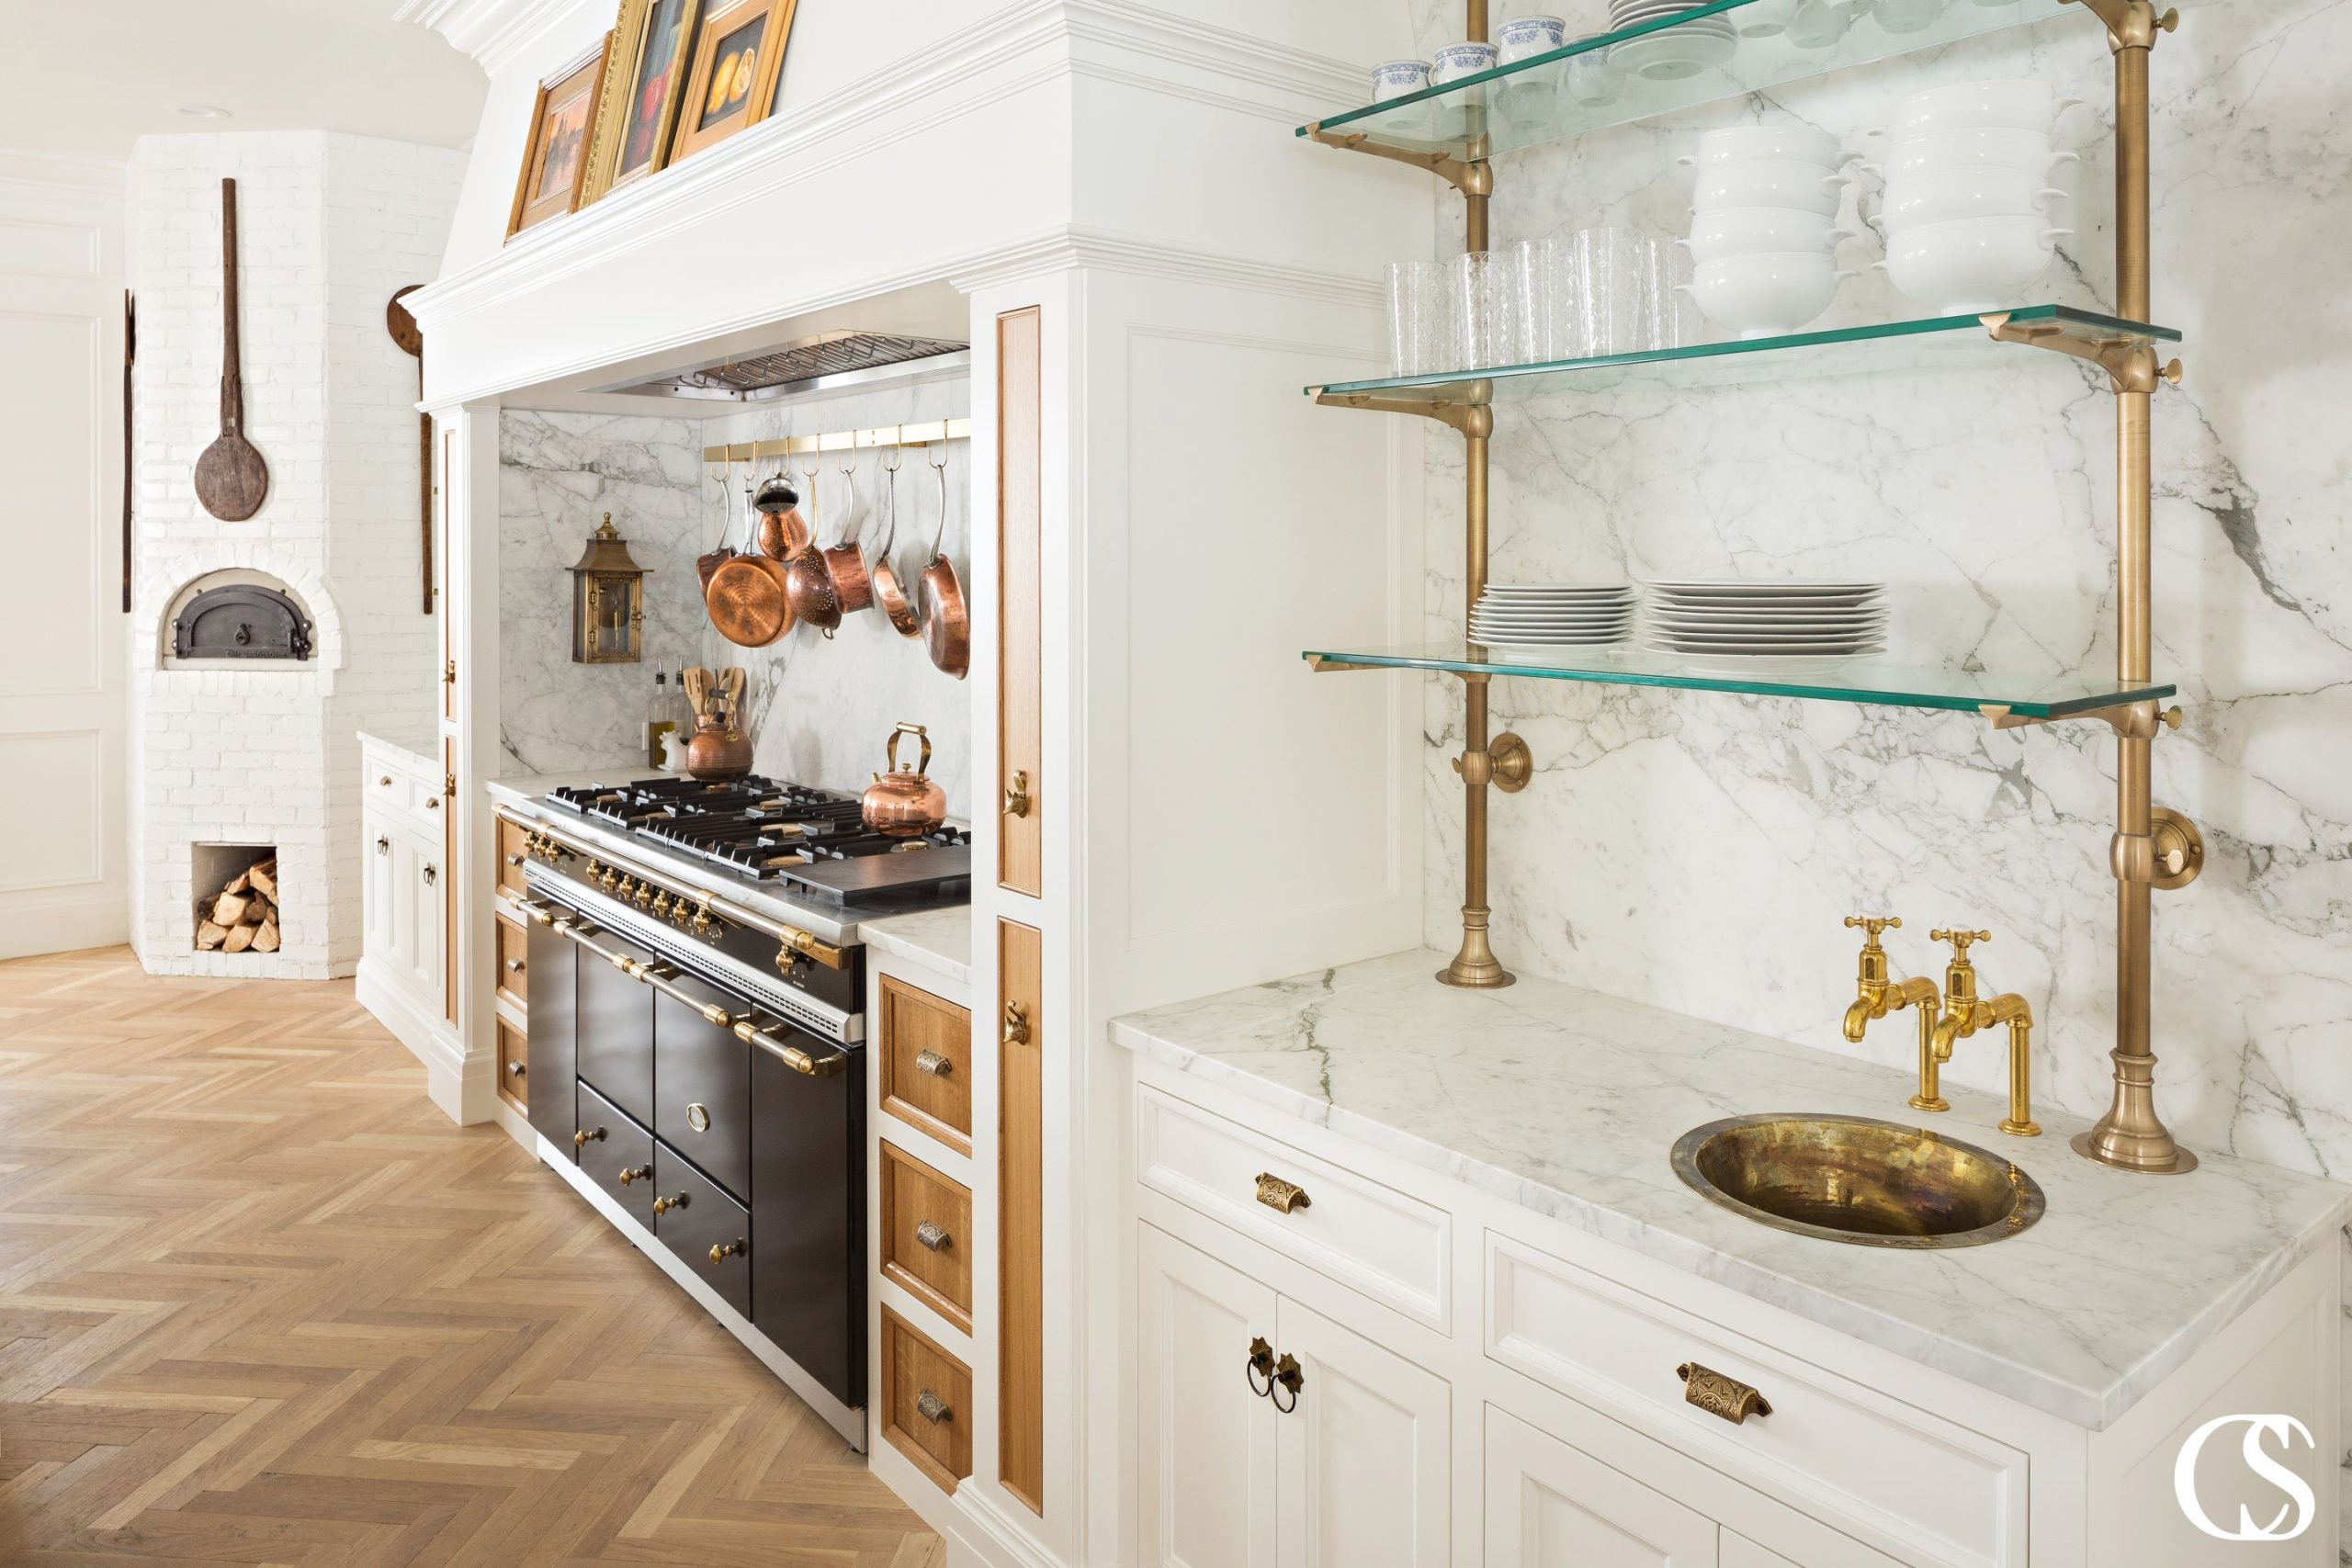 Custom kitchens are all as unique as their homeowners. Want airy, glass open shelving? How about a touch of heat from your own brick pizza oven? Add in warm copper accents and cabinet fronts and you've got yourself a truly unique and incredibly usable kitchen.